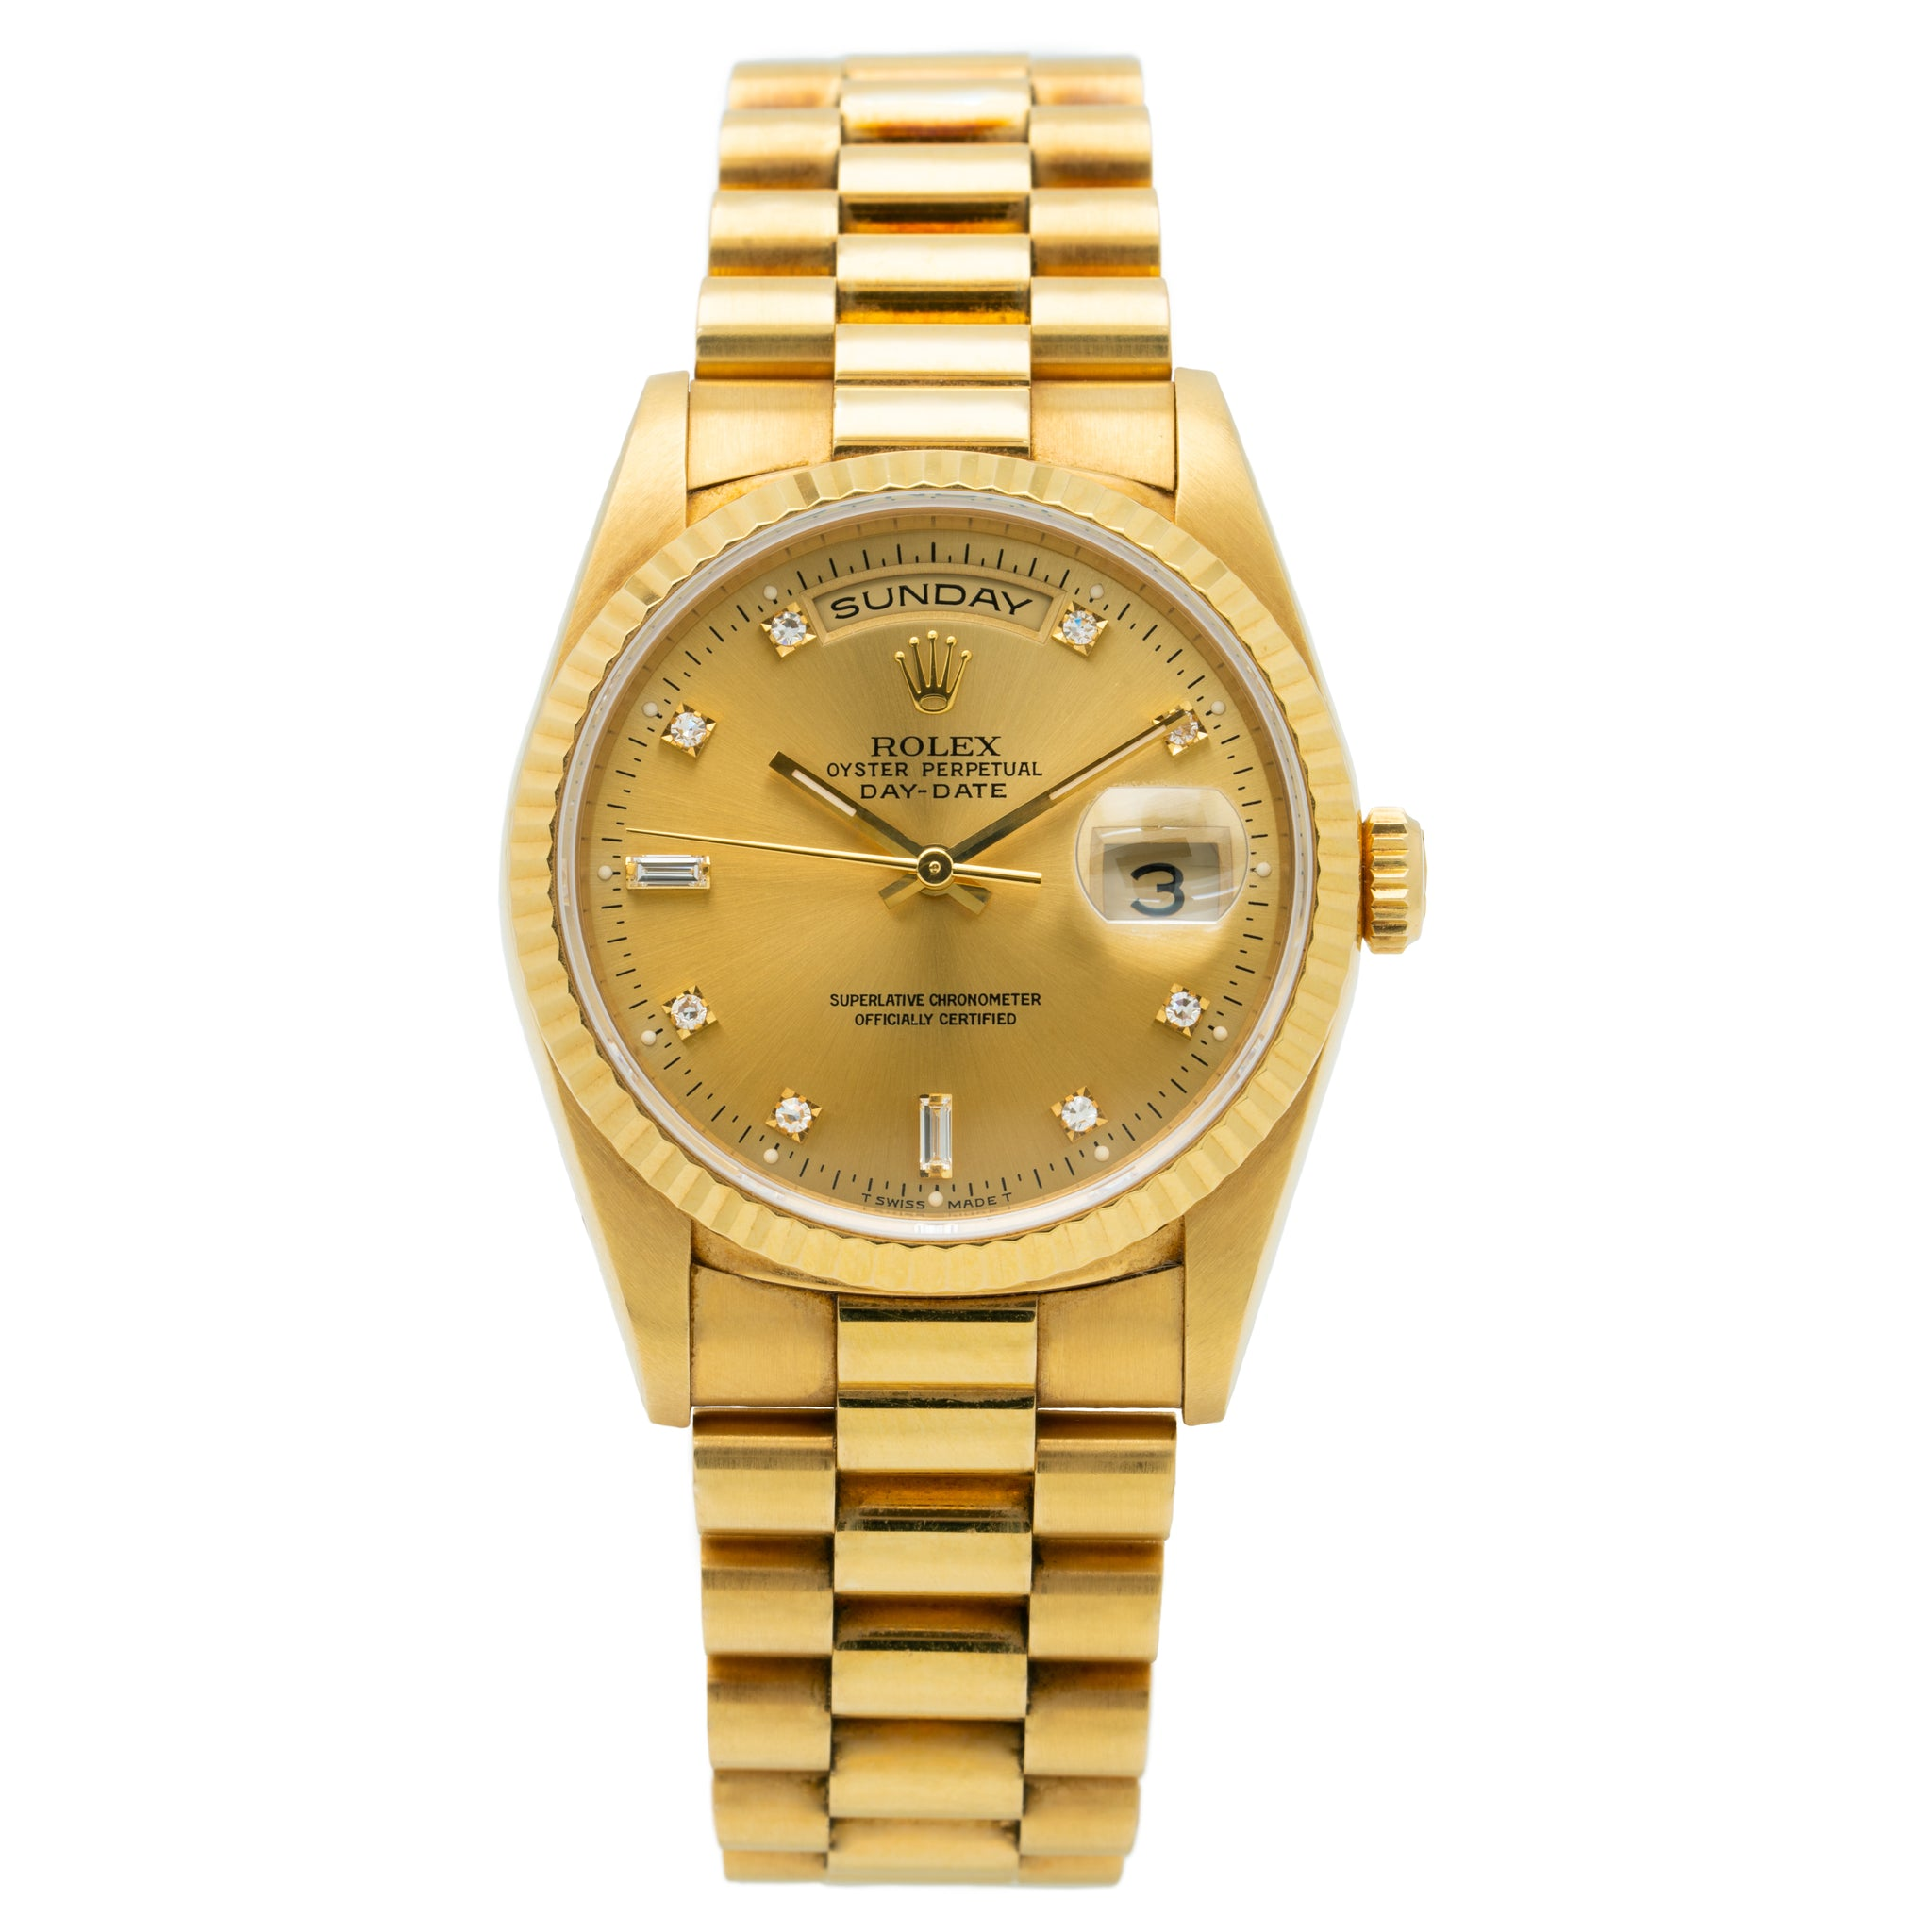 1995 ROLEX PRESIDENT DAY-DATE 18K GOLD AND DIAMOND MODEL 18238